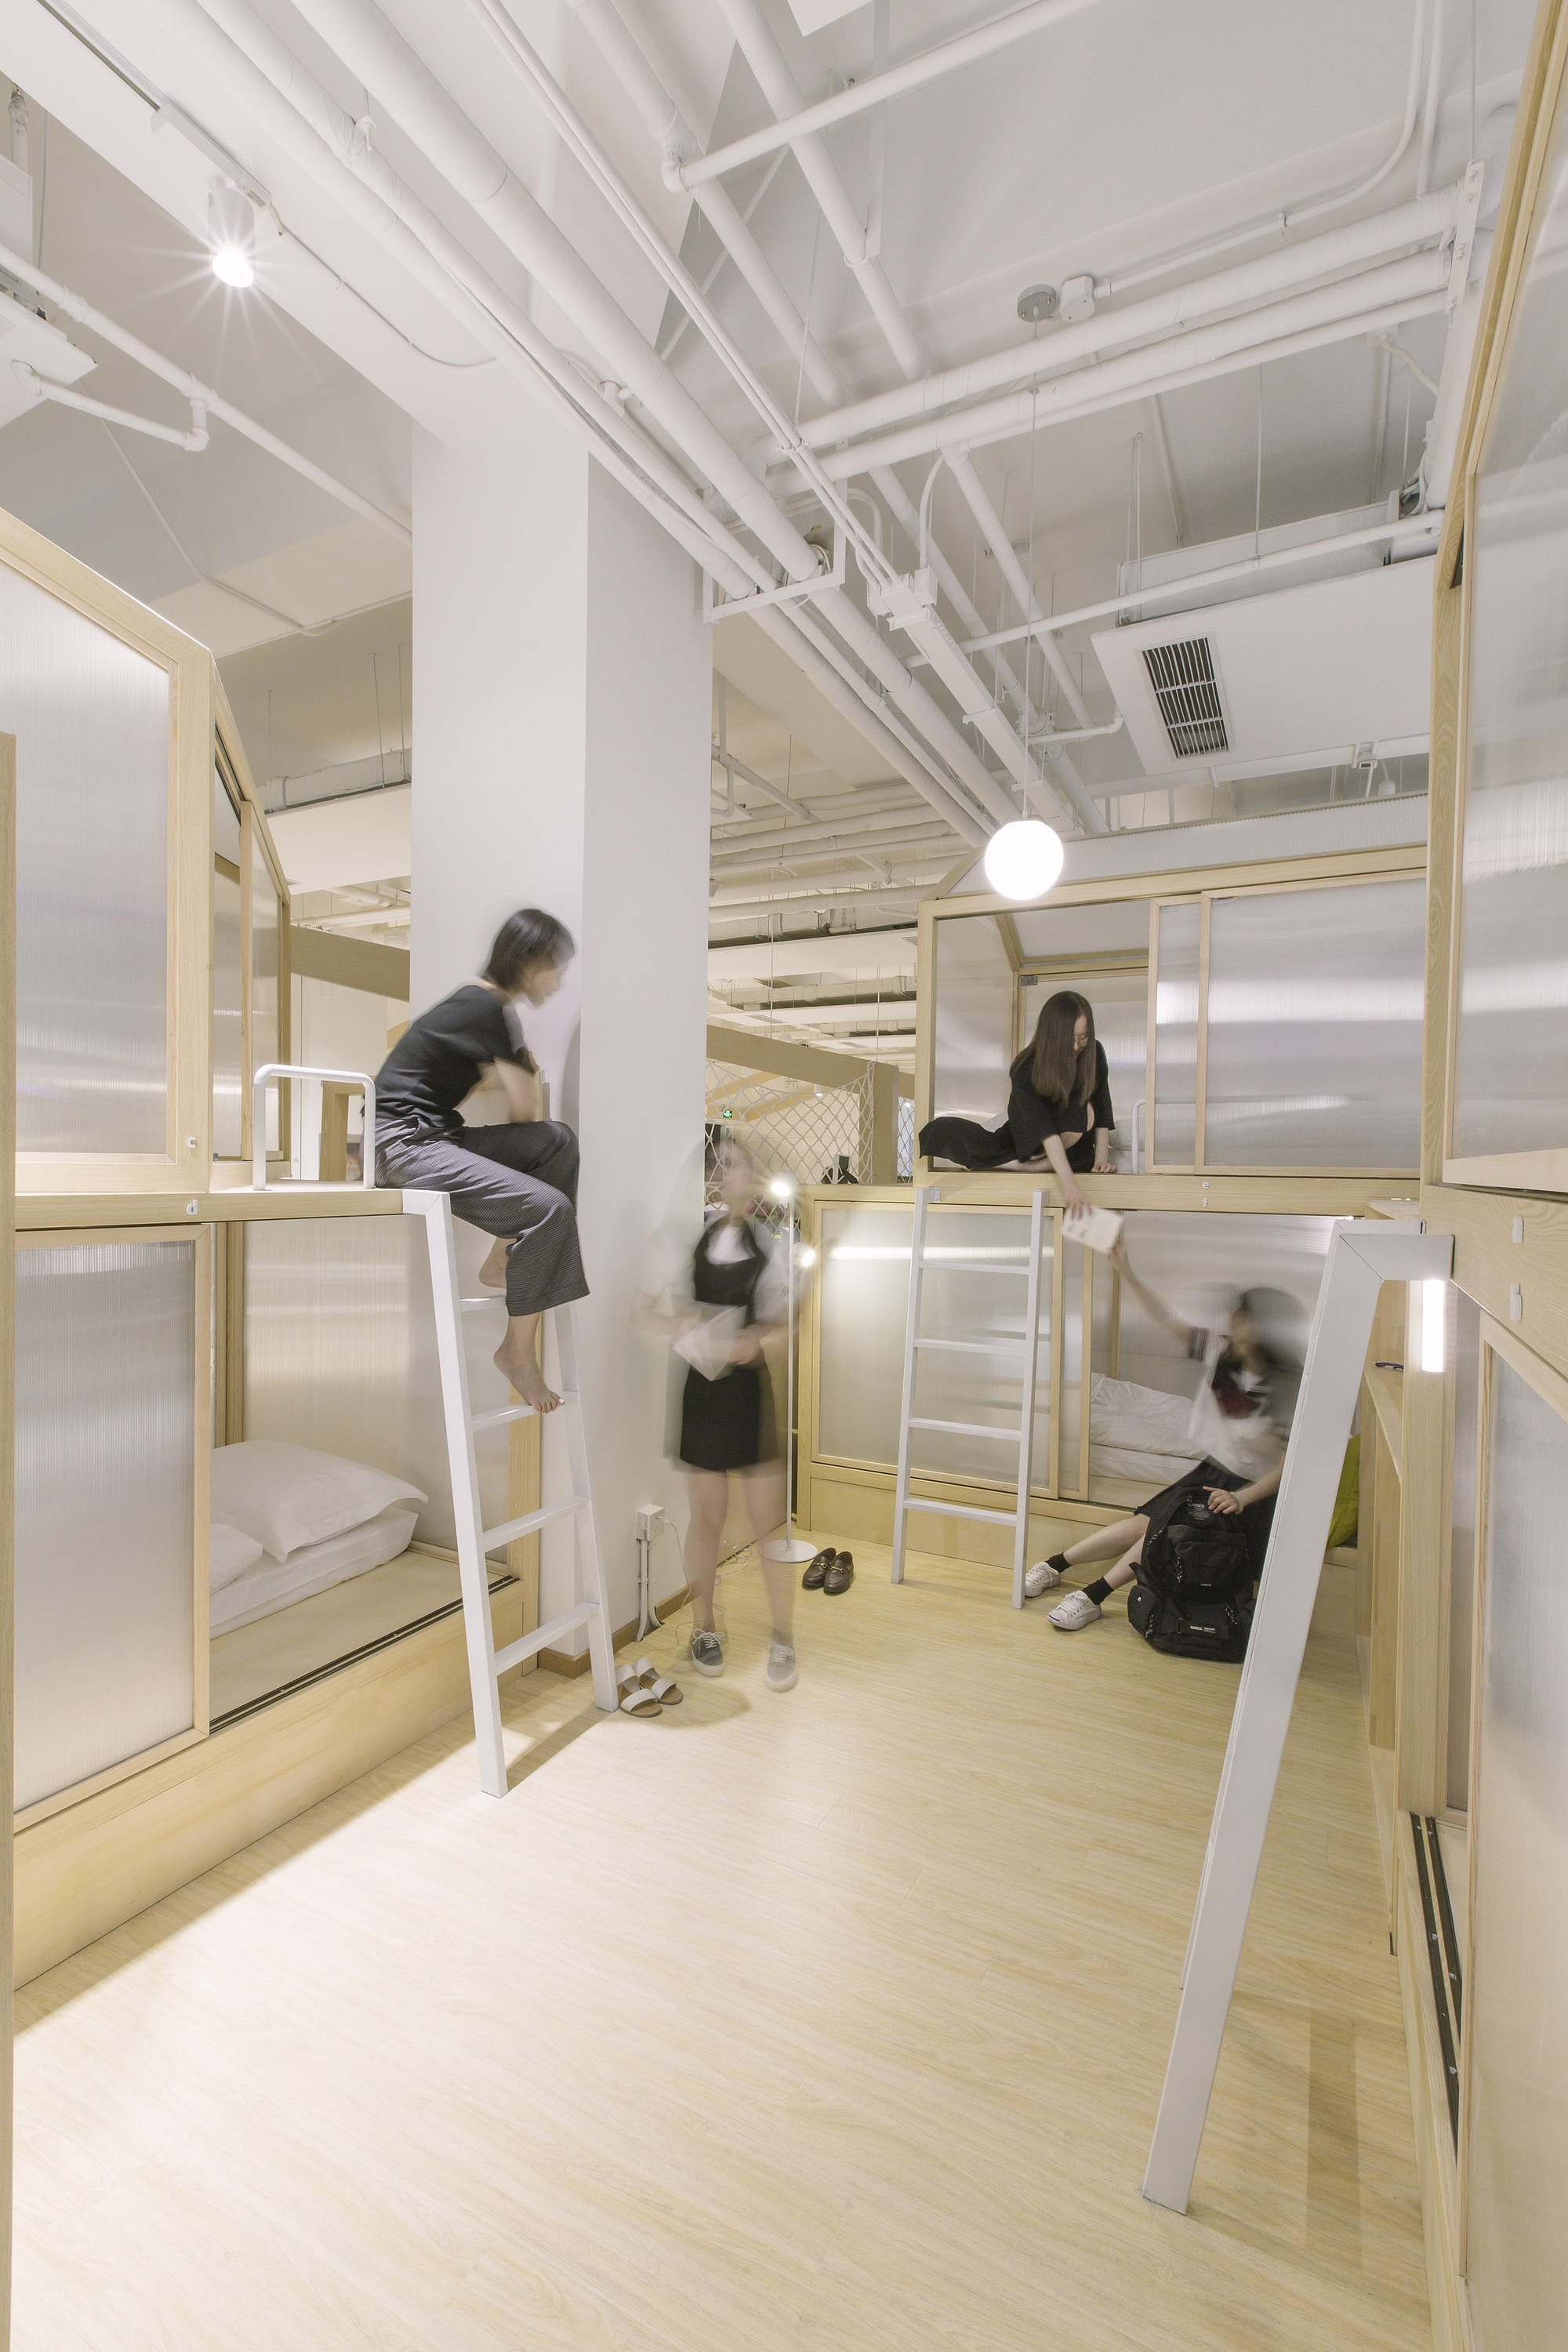 Hostel Architecture And Design Archdaily Loft Light Wiring Diagram Together Cao Pu Studio